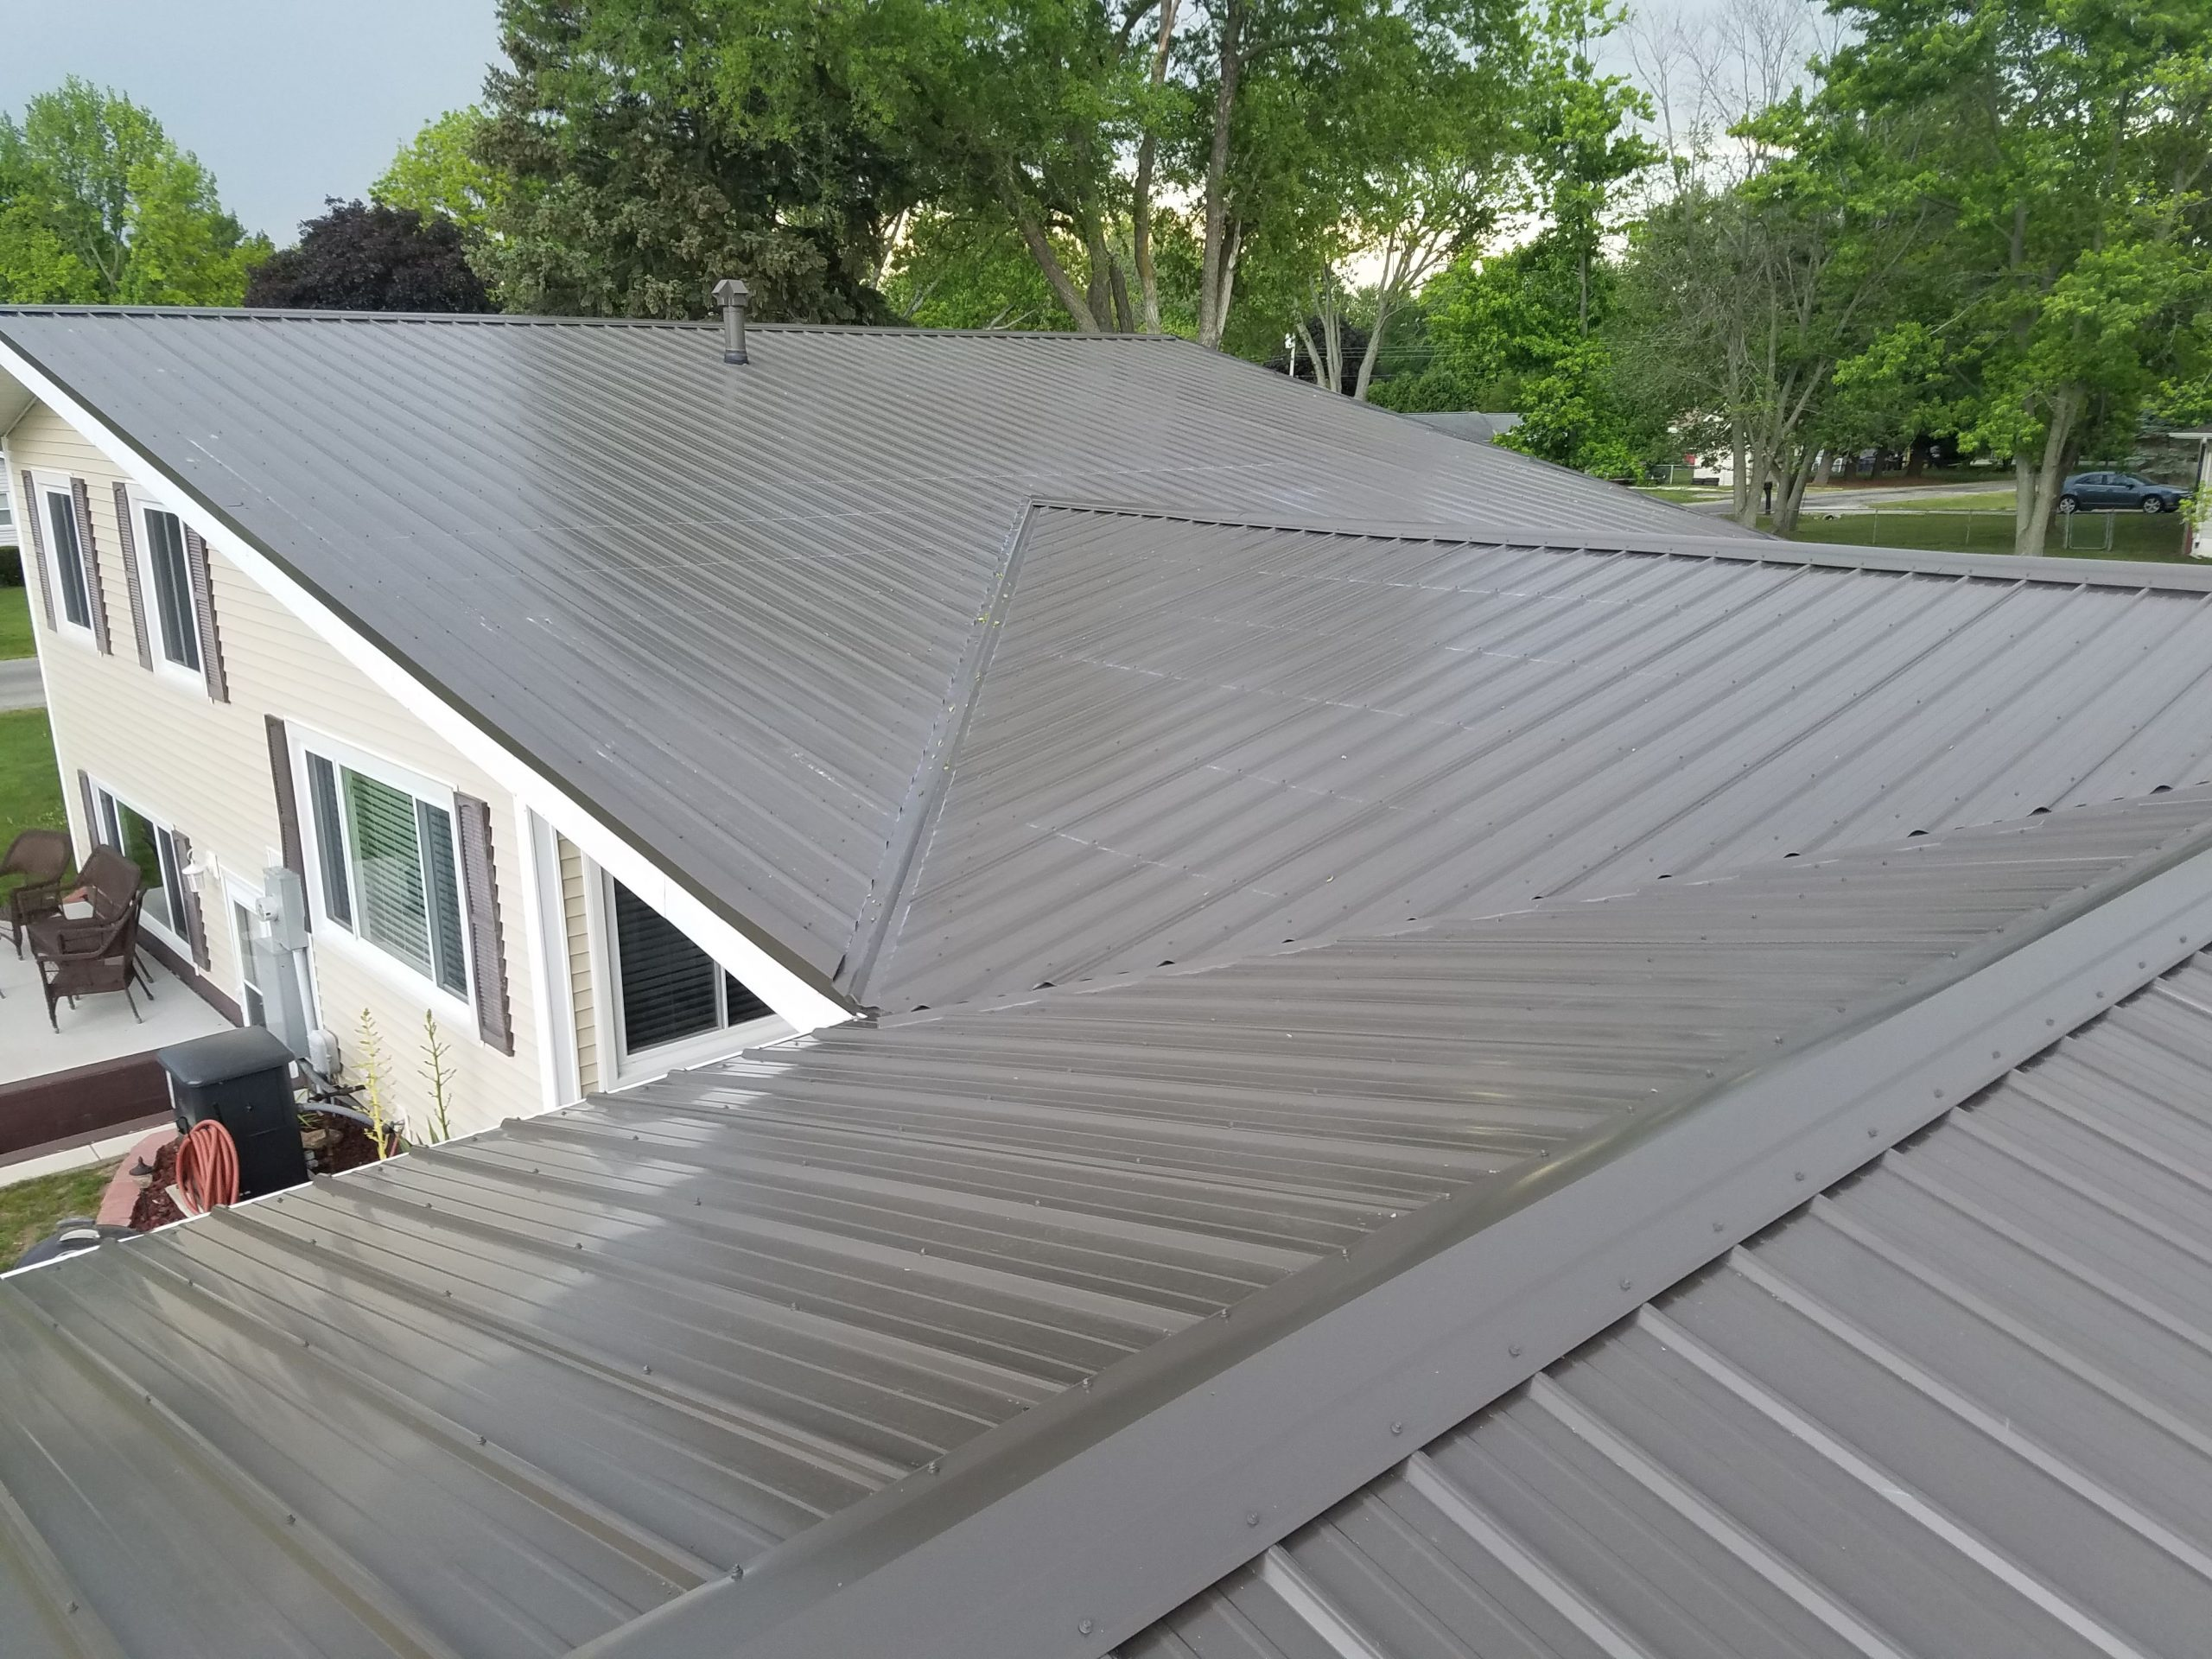 completed metal roofing project